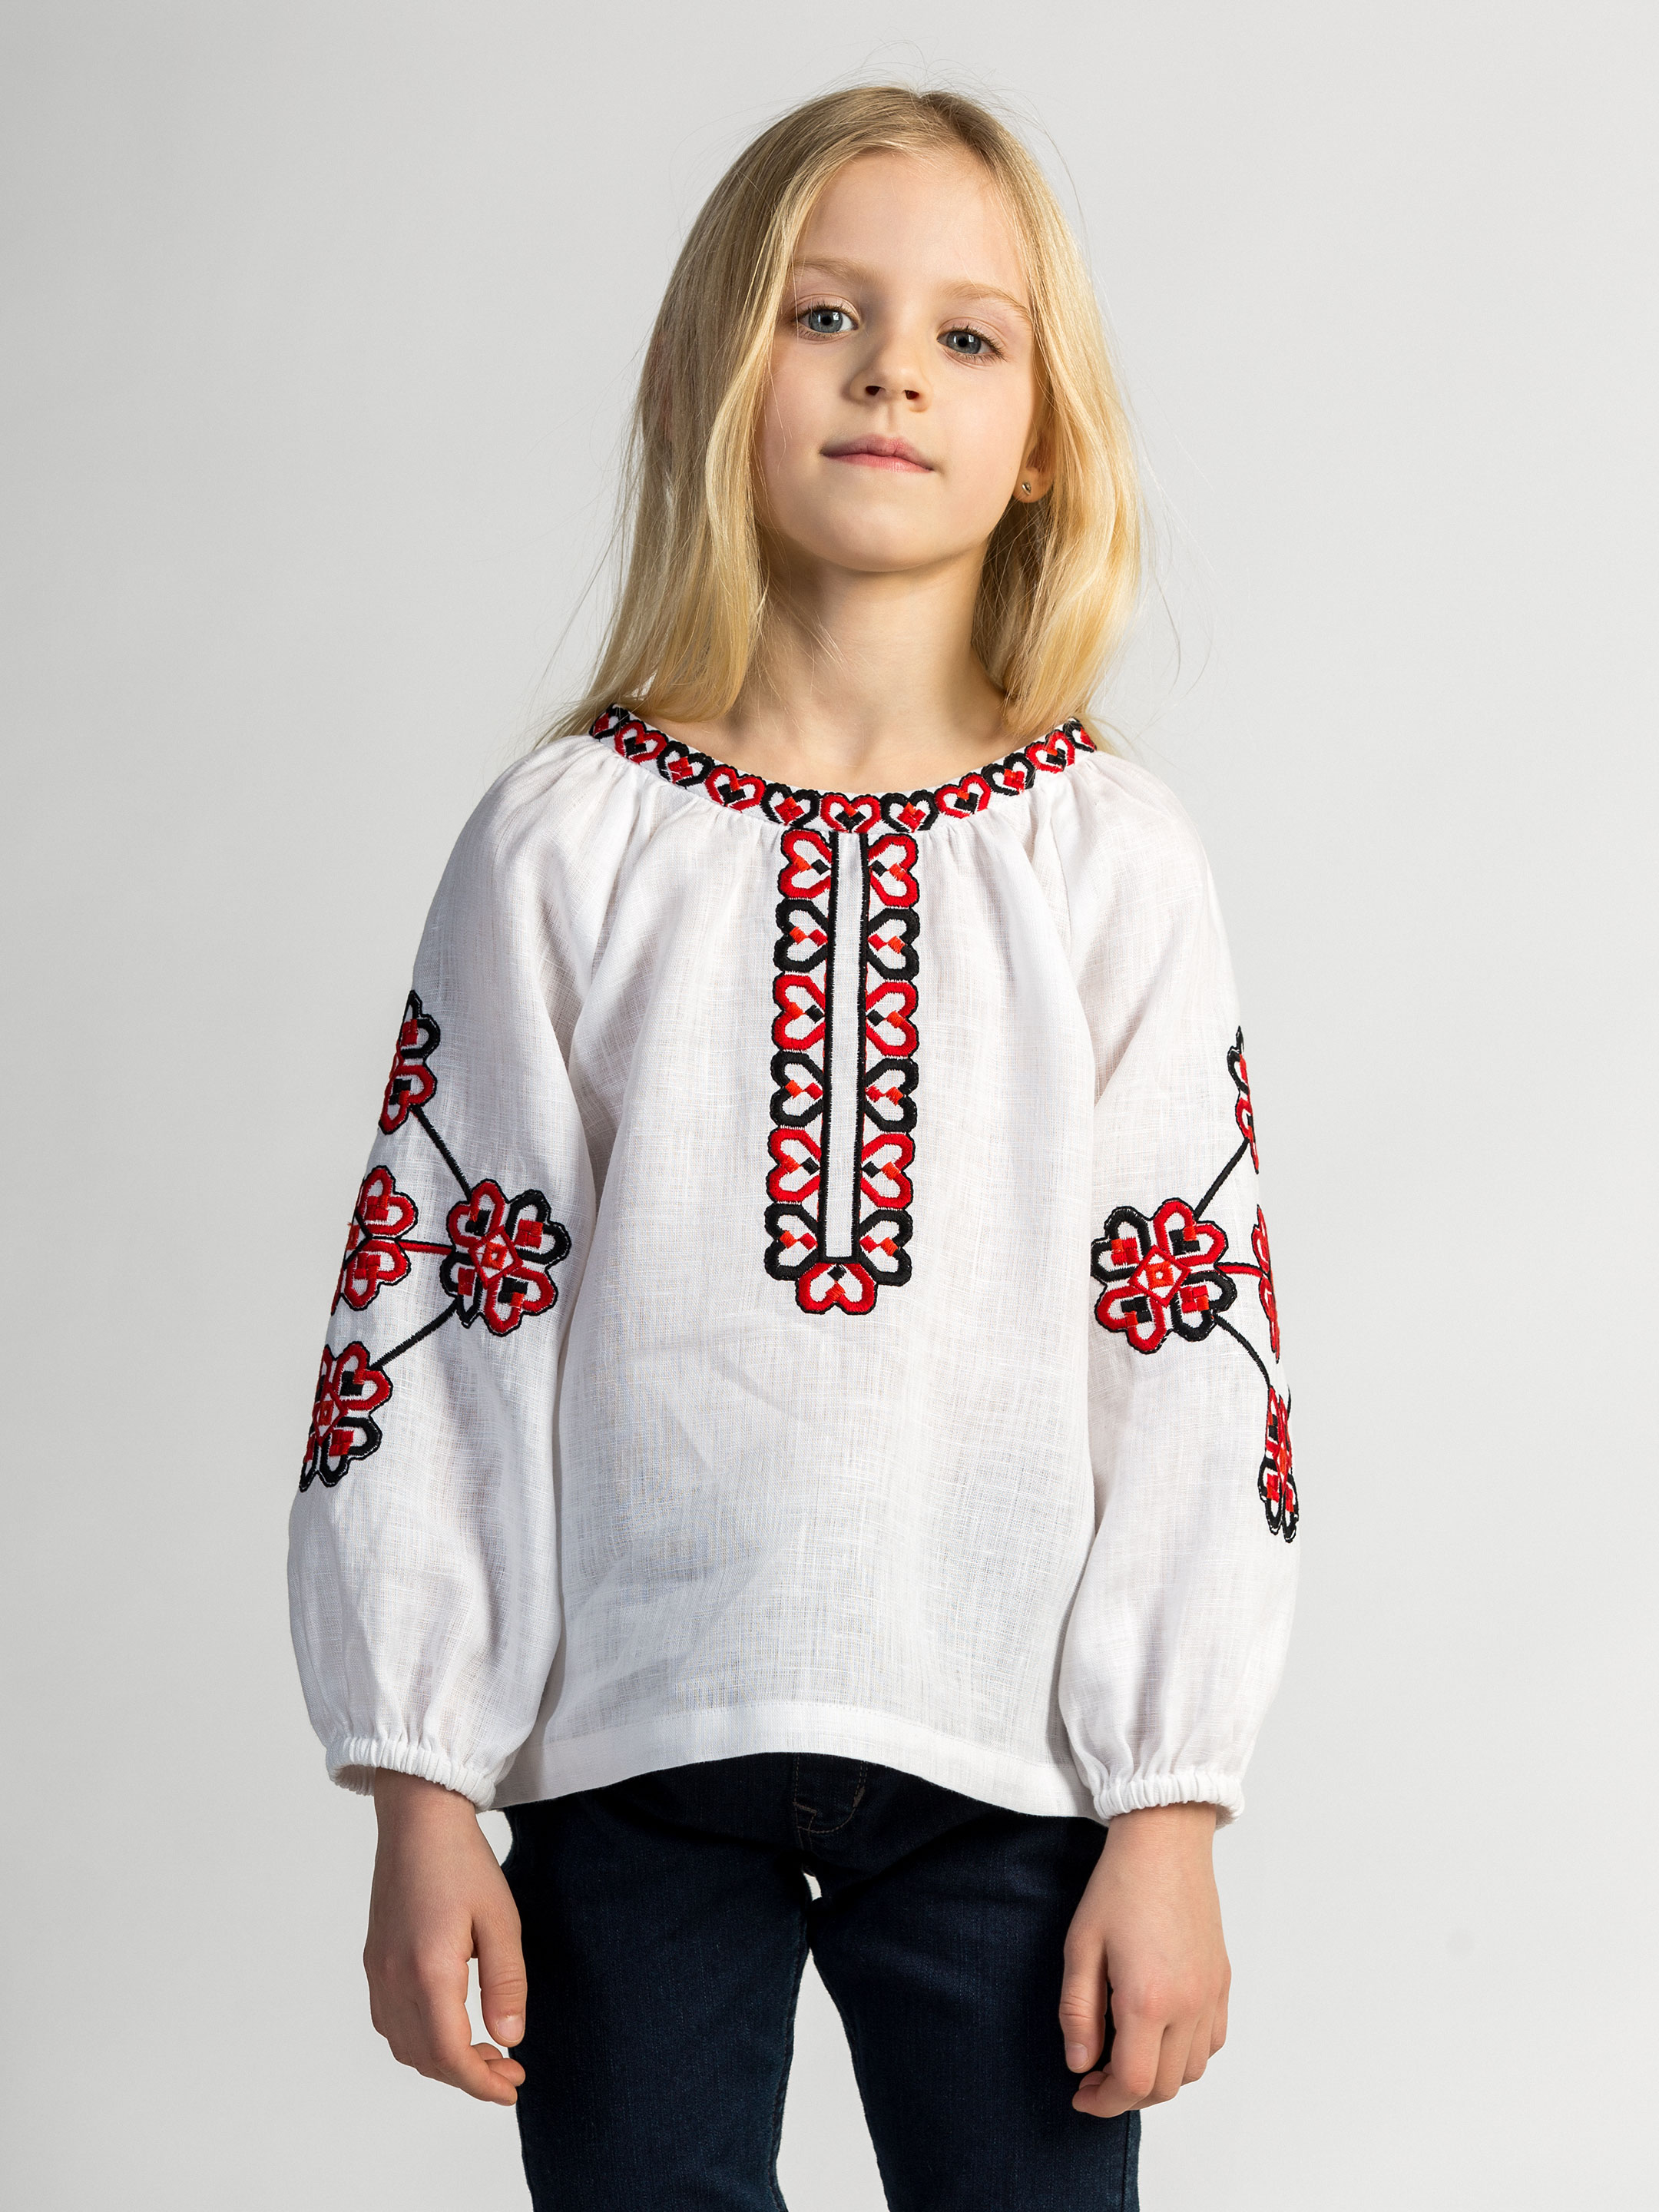 Embroidered shirt for girls Red Heart